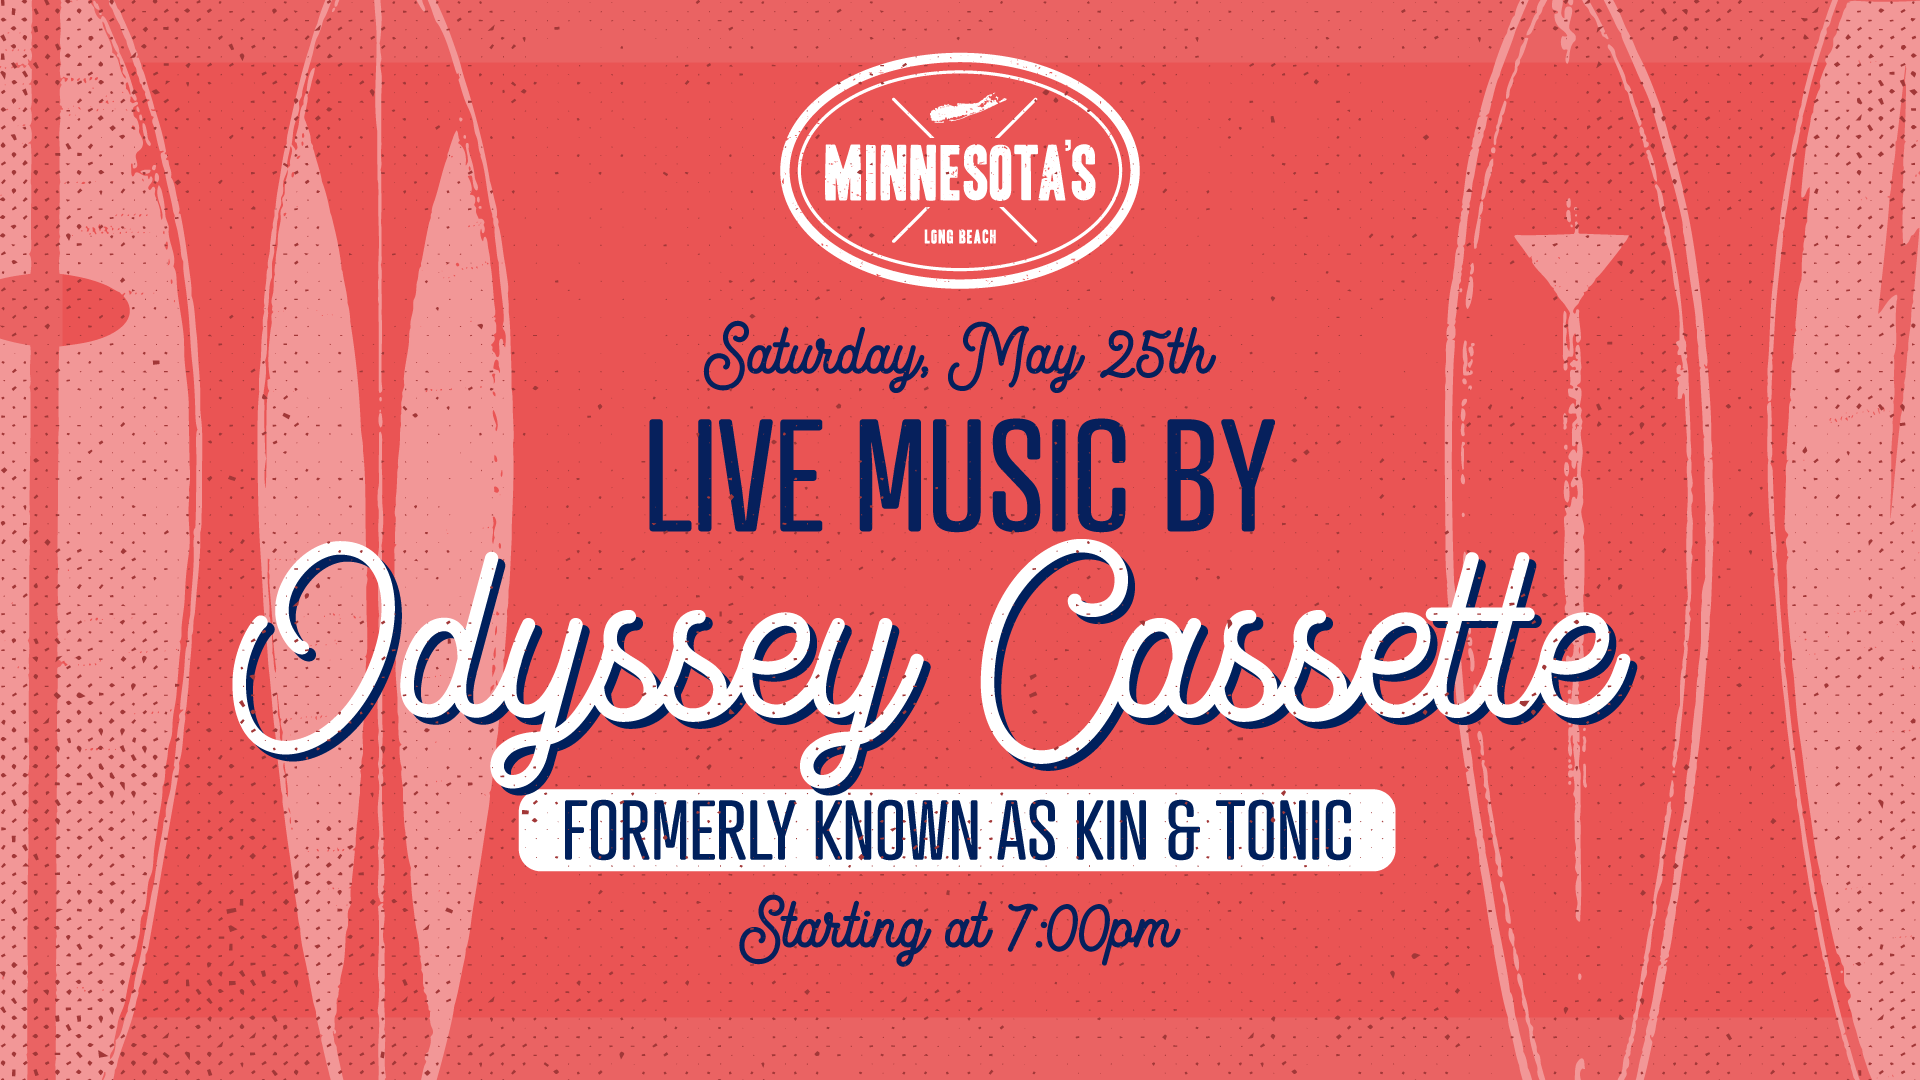 flyer for live music by Odyssey Casette at minnesotas on may 25th at 7pm